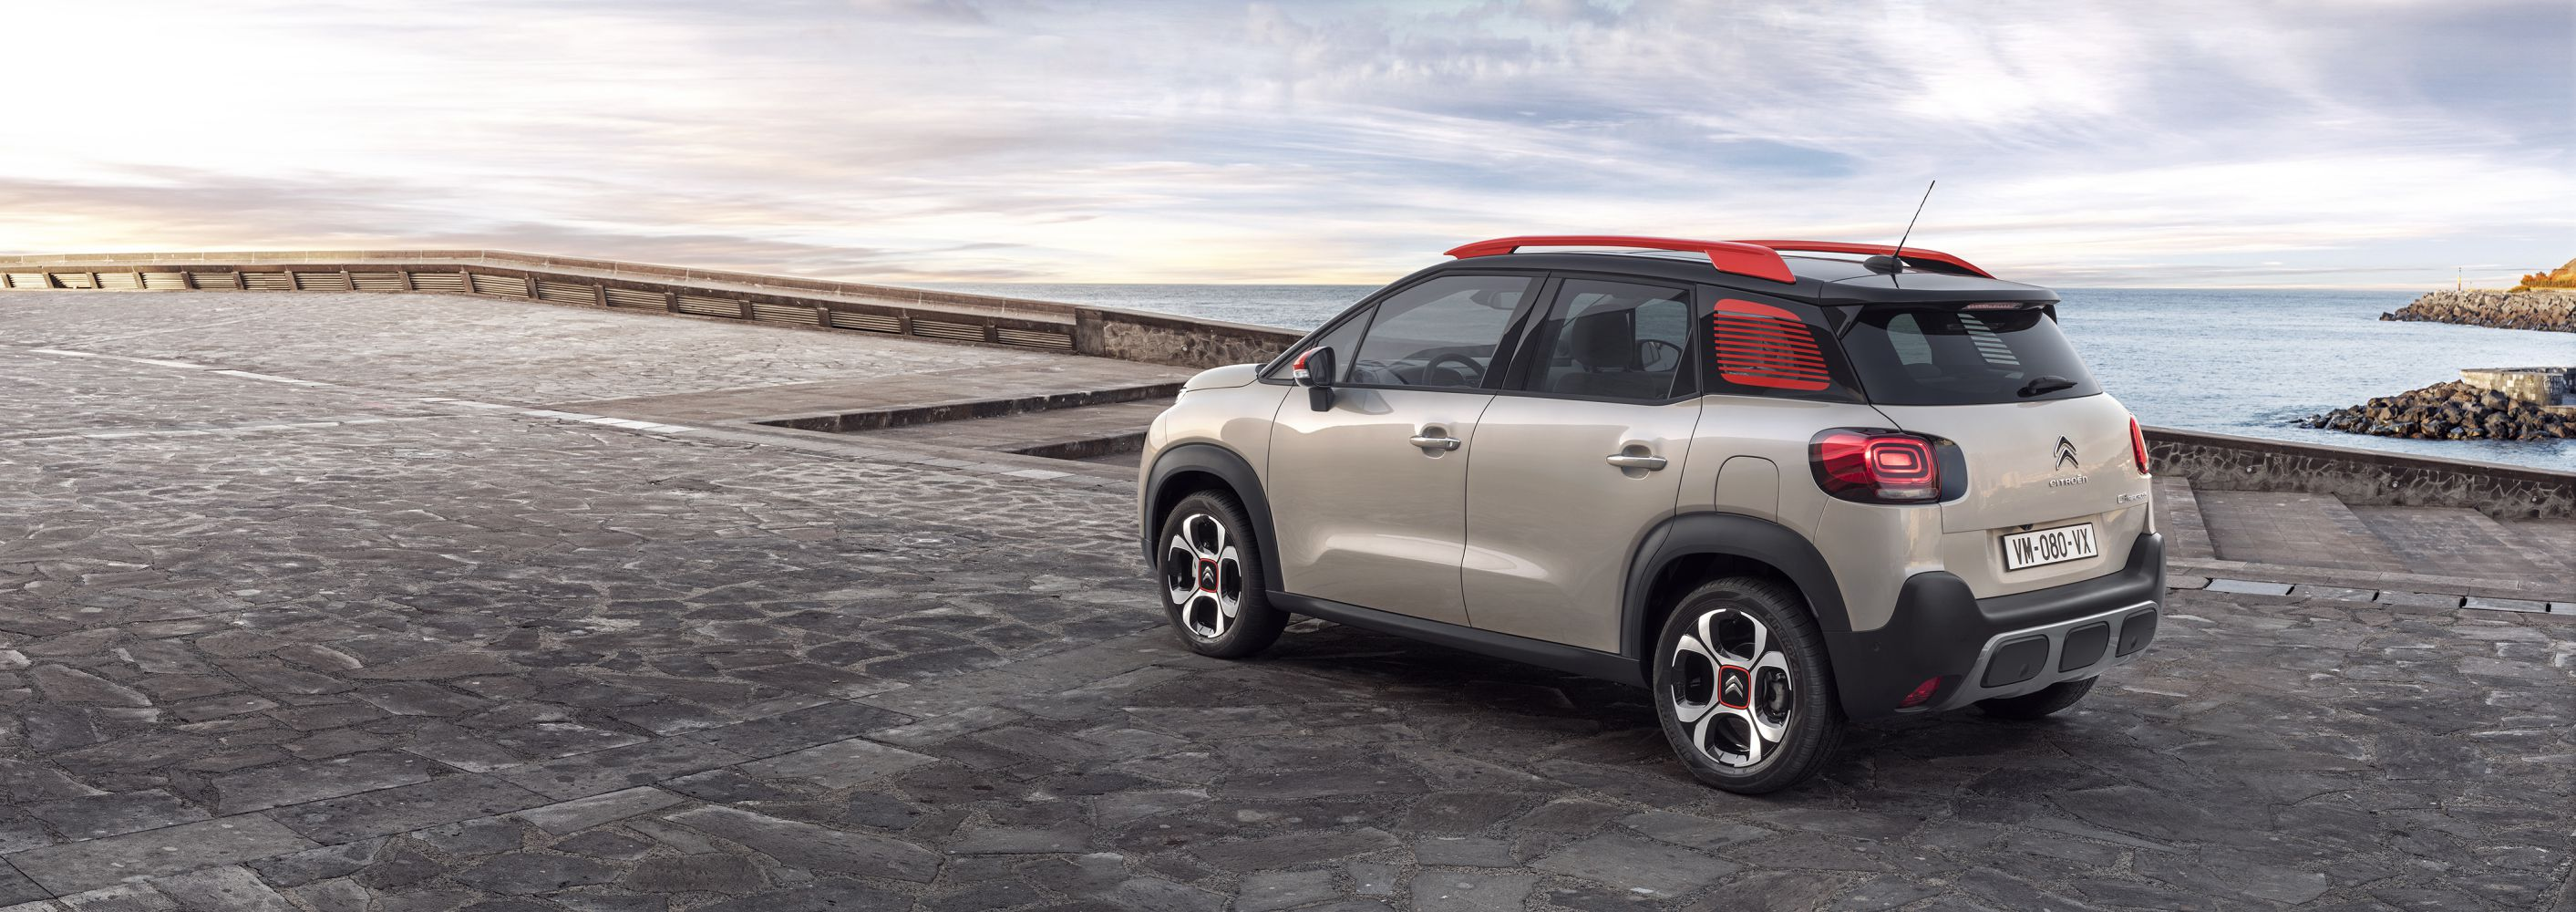 to enlarge image Citroen C3 Aircross SUV 1